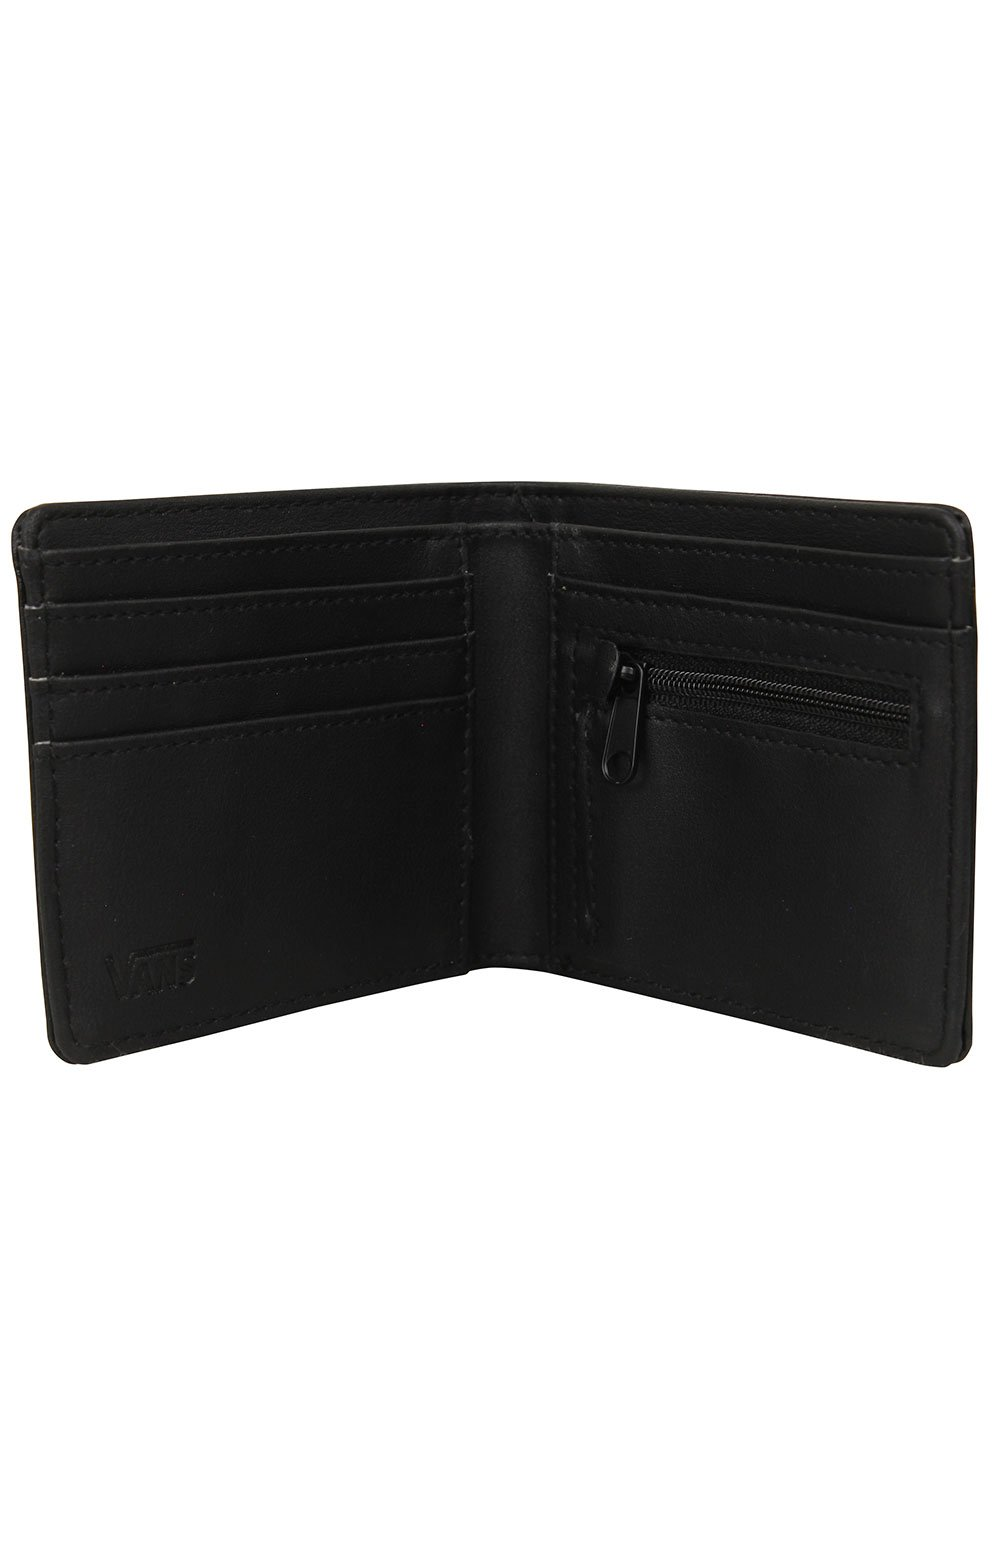 Vans Logo Wallet - Black 3